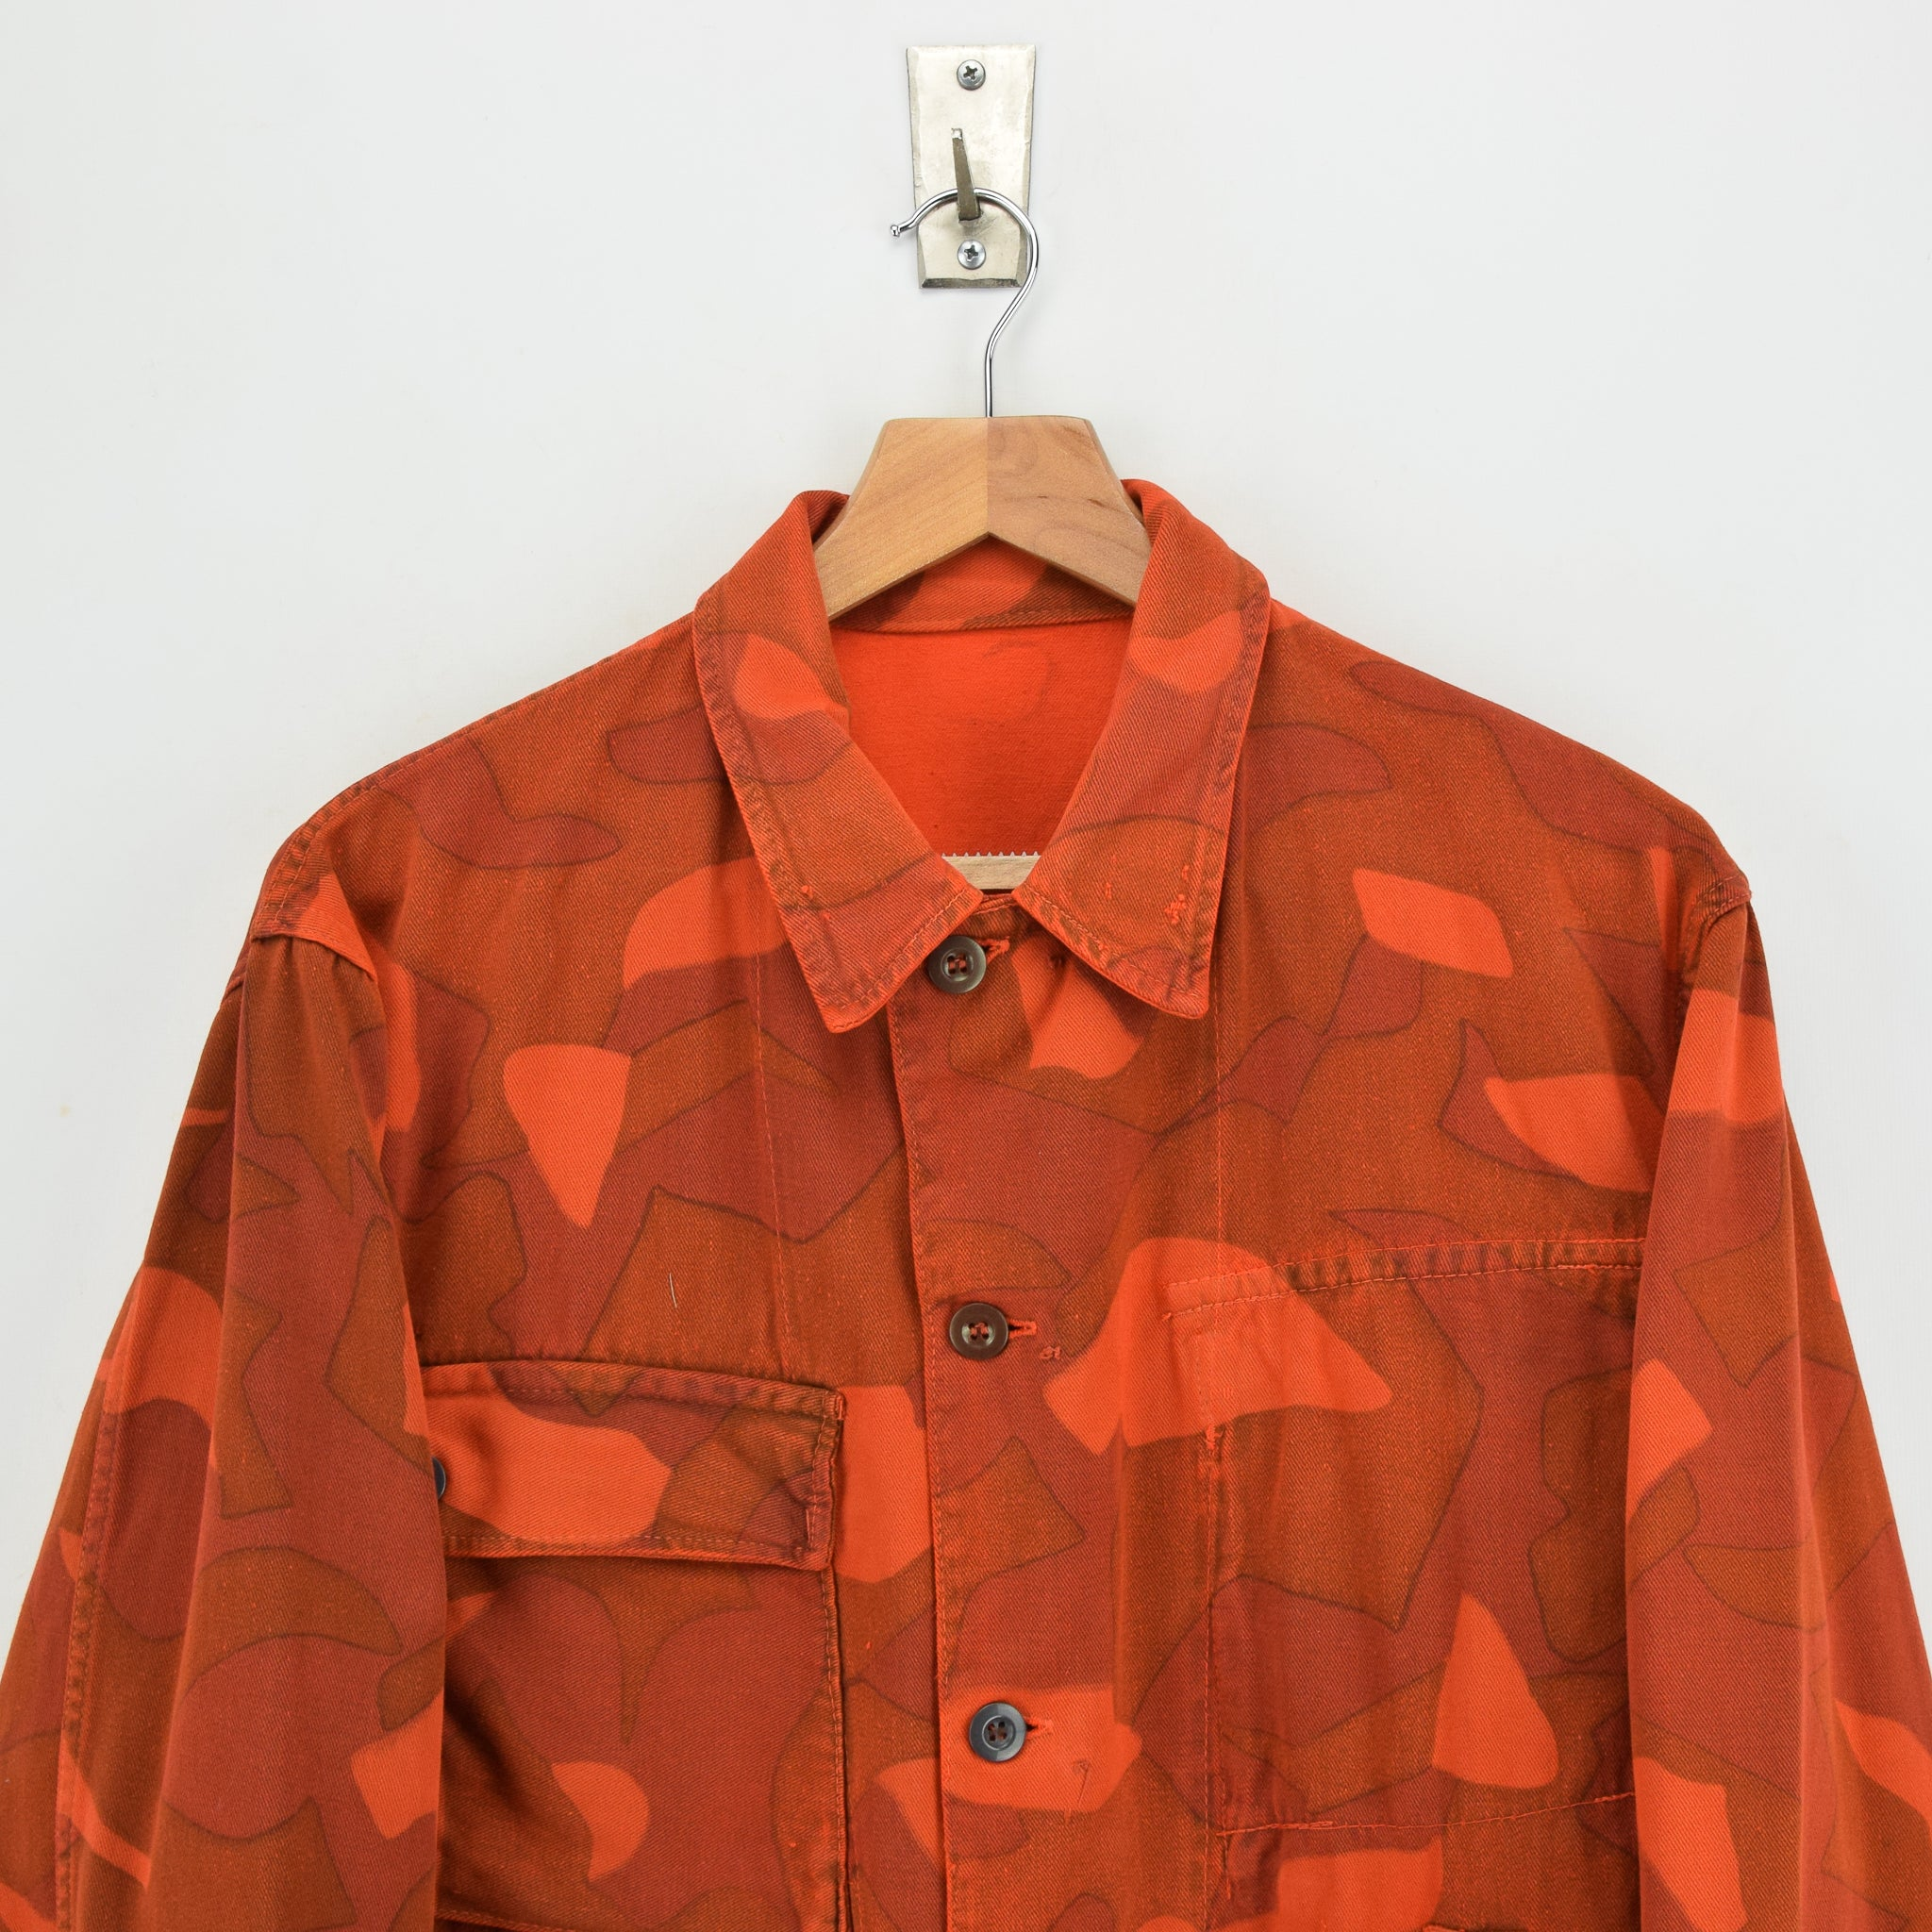 Vintage 60s Military Finnish Army Orange Overdyed Camo Mountain Field Jacket M chest